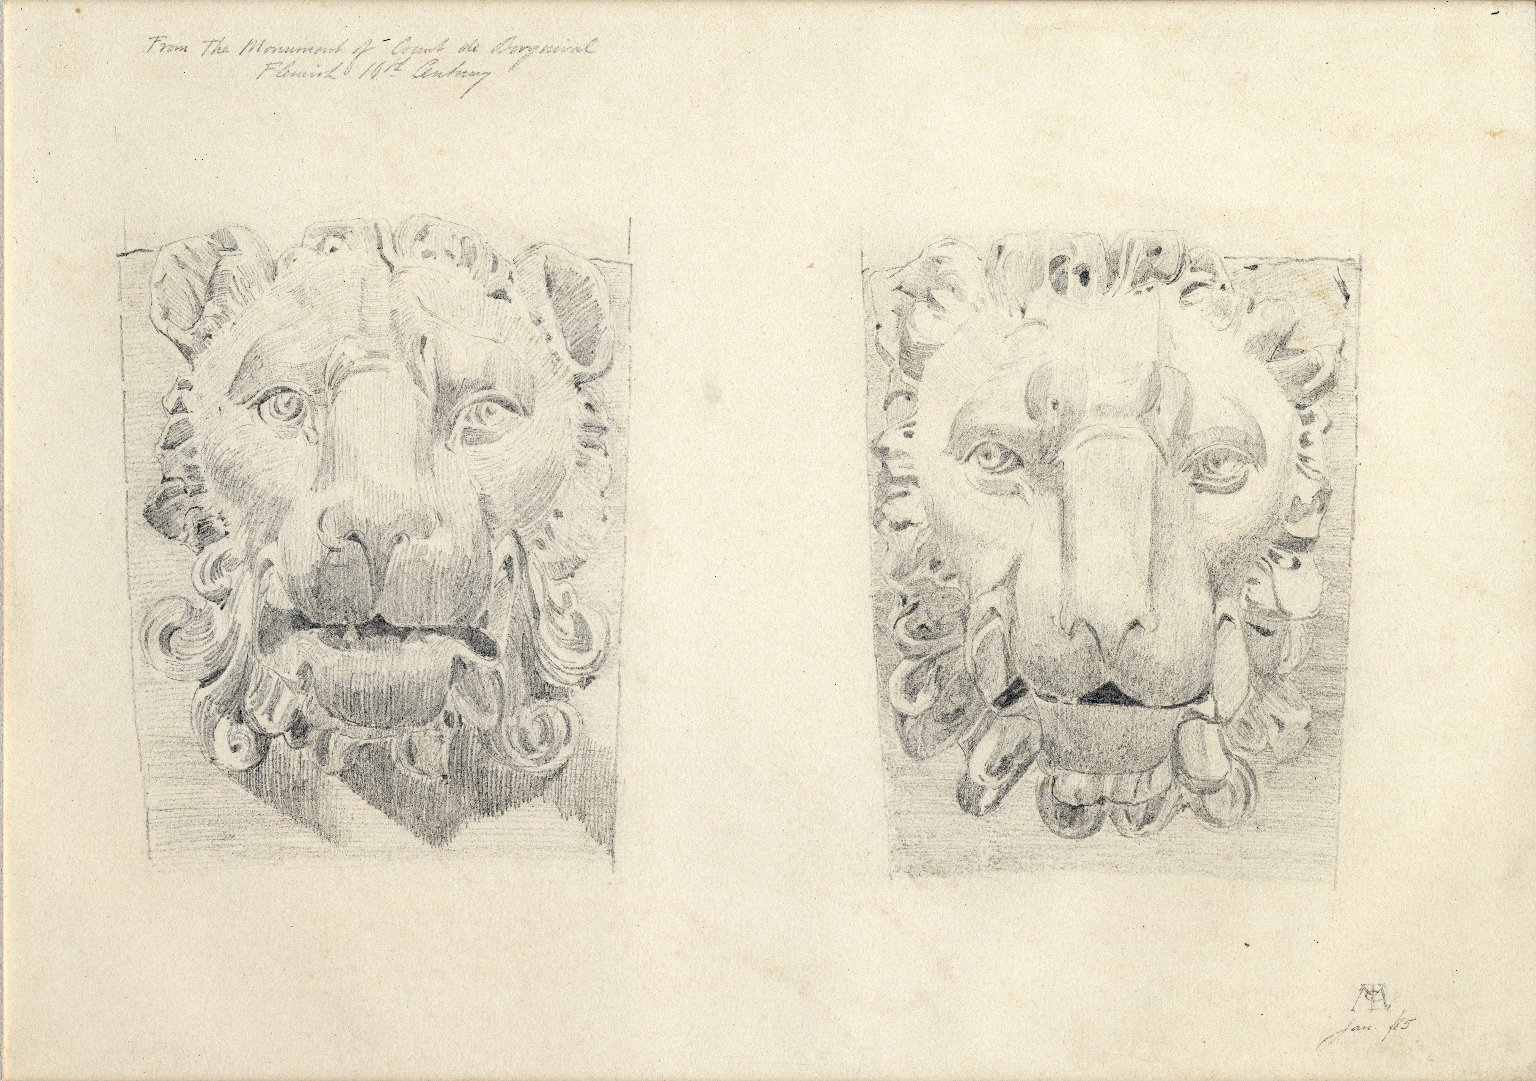 Lionhead designs from Monument of the Count de Borgnival